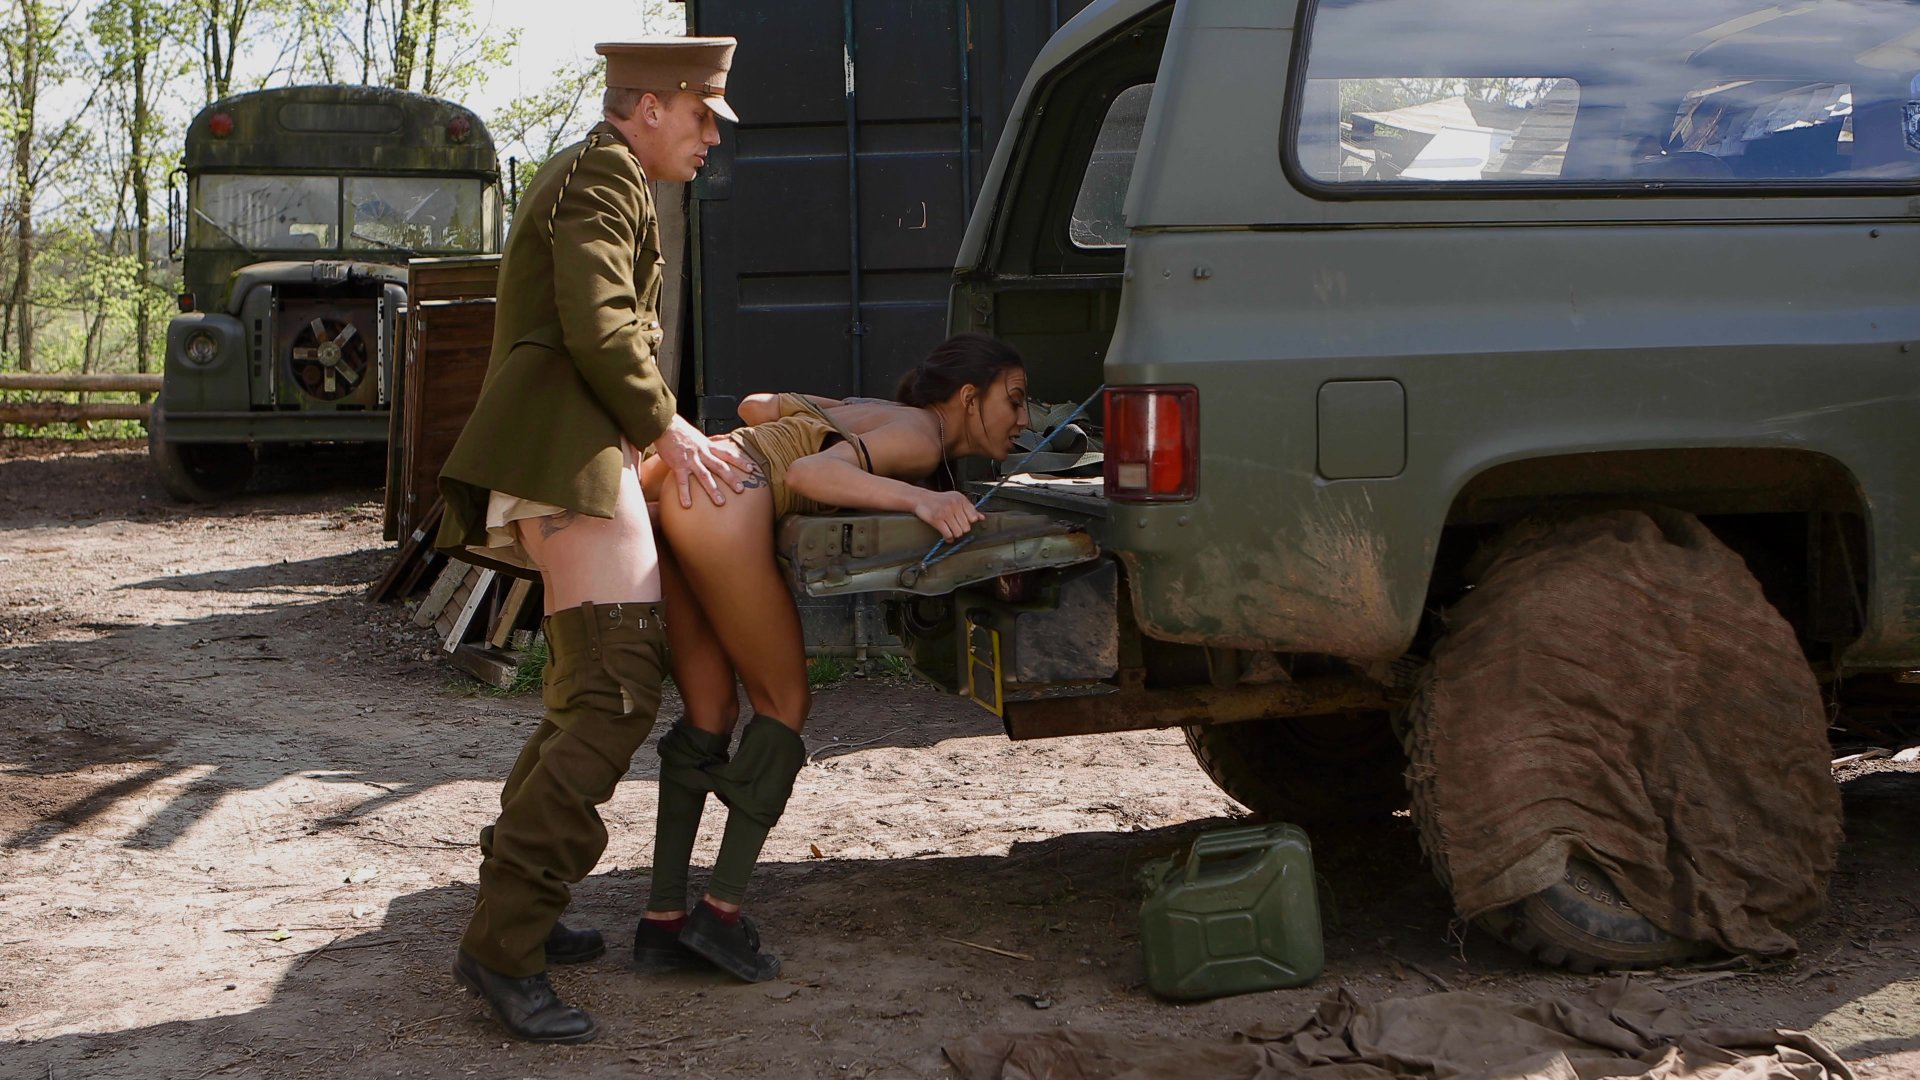 watch military misconduct 2017 marc dorcel english